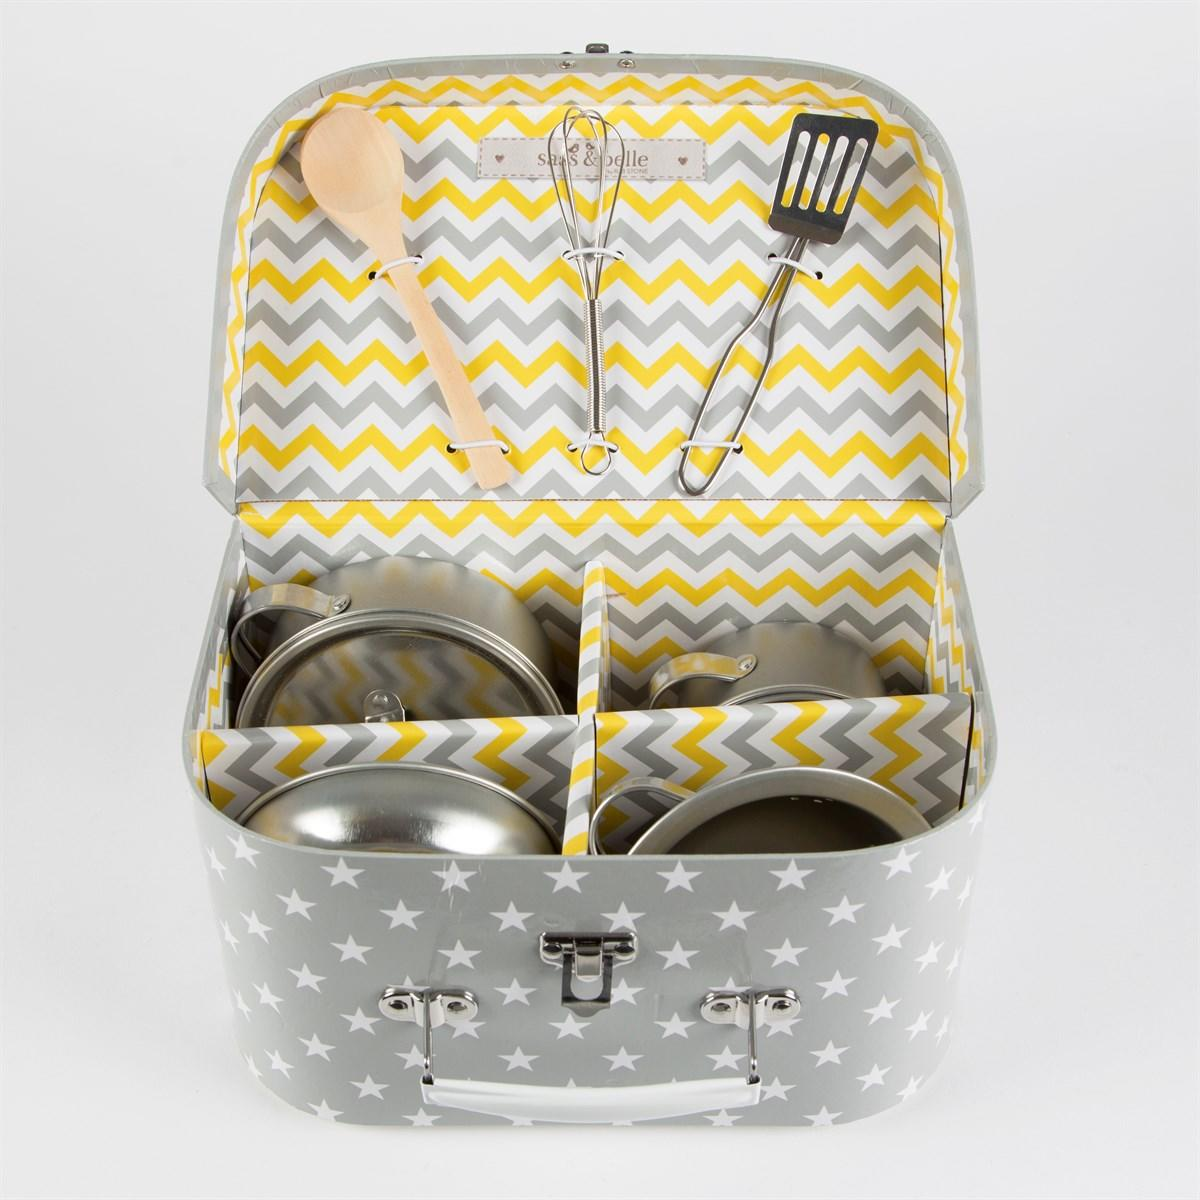 New Grey Stars Childrens Suitcase Containing a Cooking Set